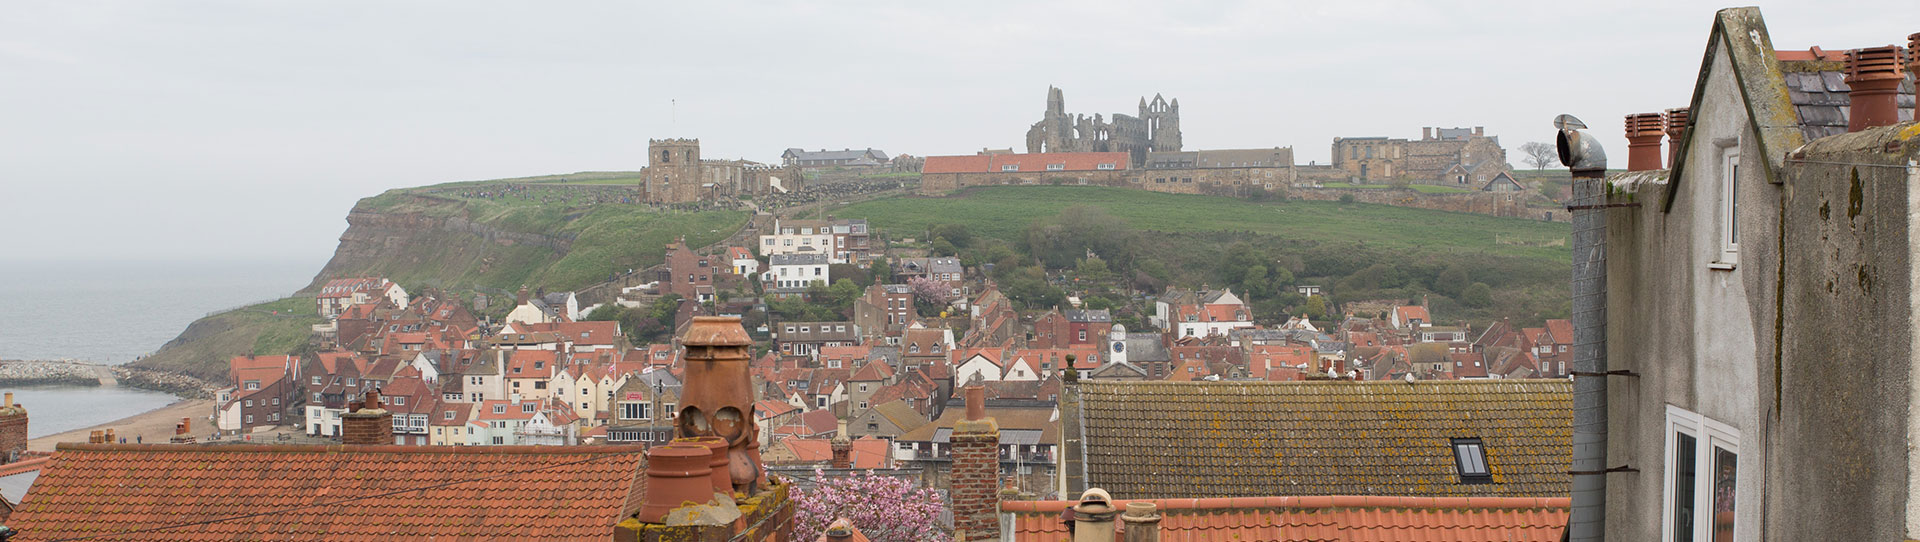 Explore Whitby